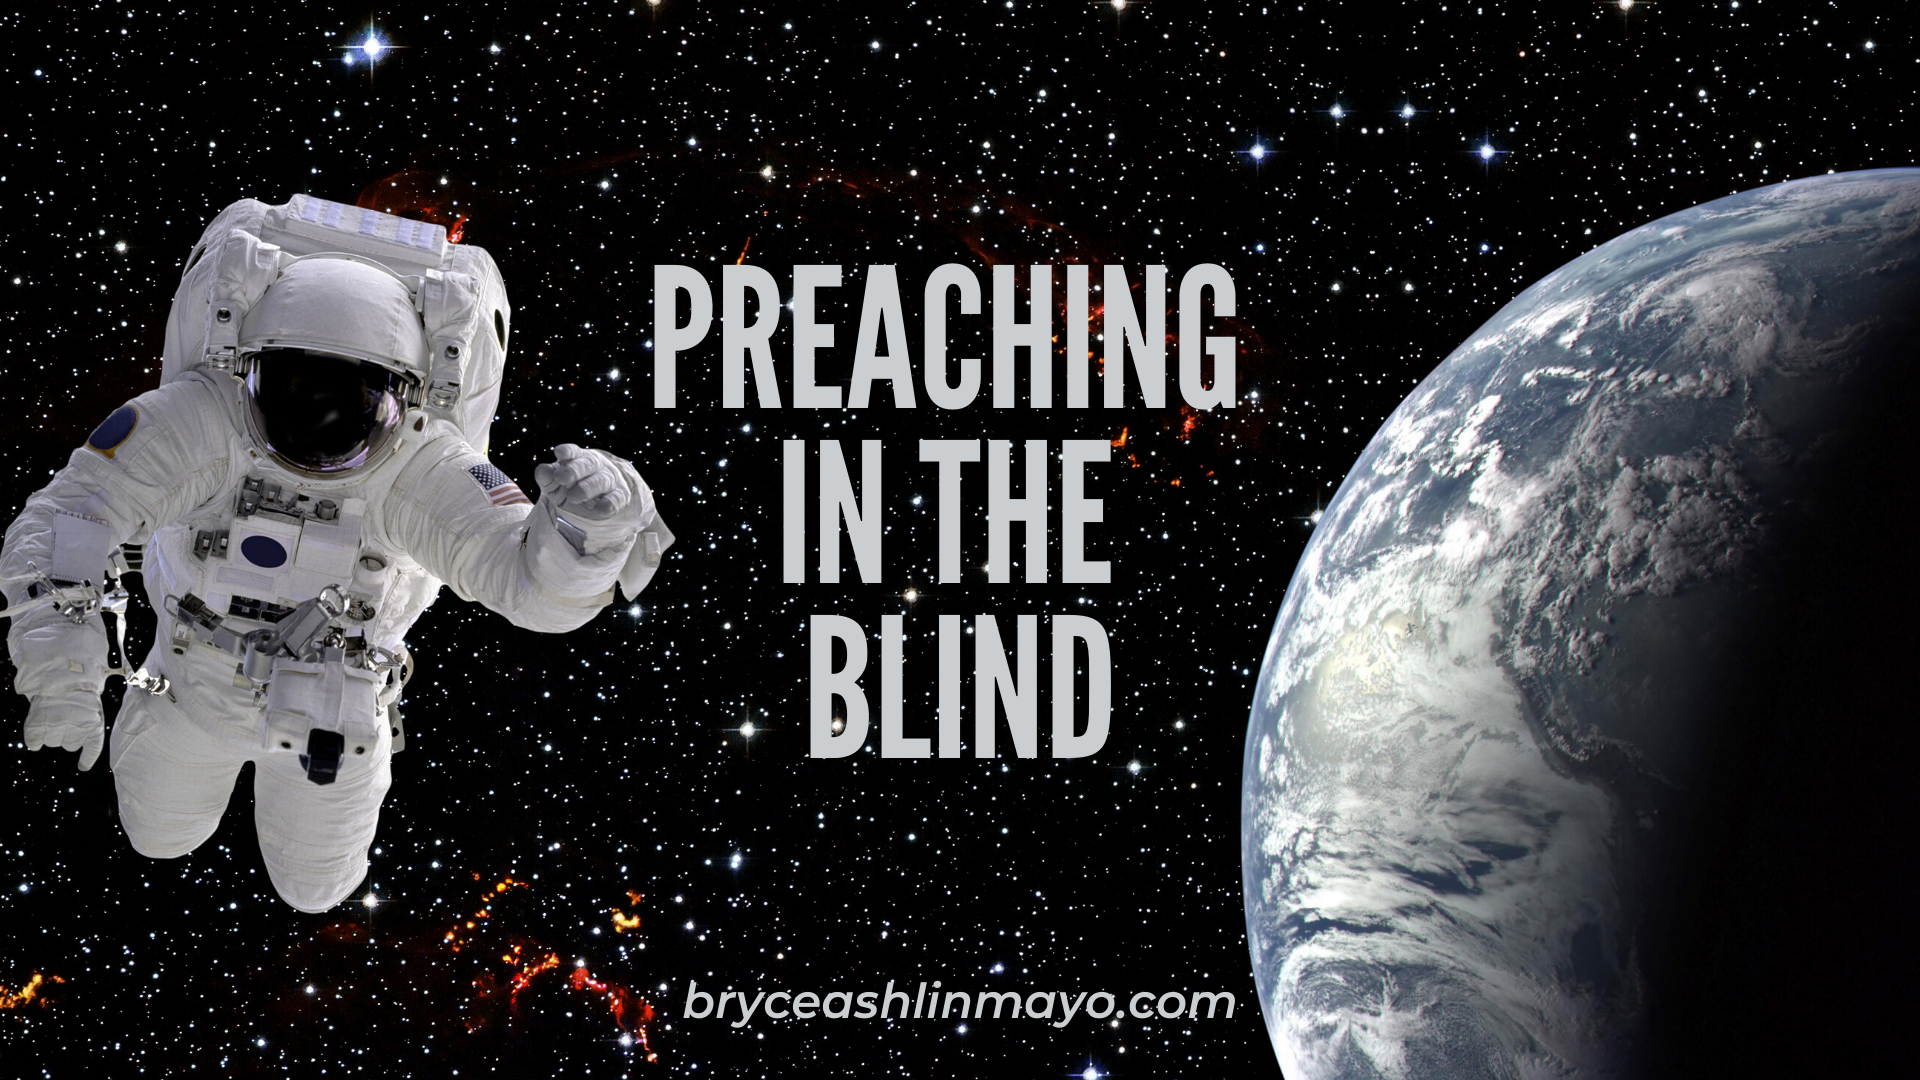 Preaching in the Blind